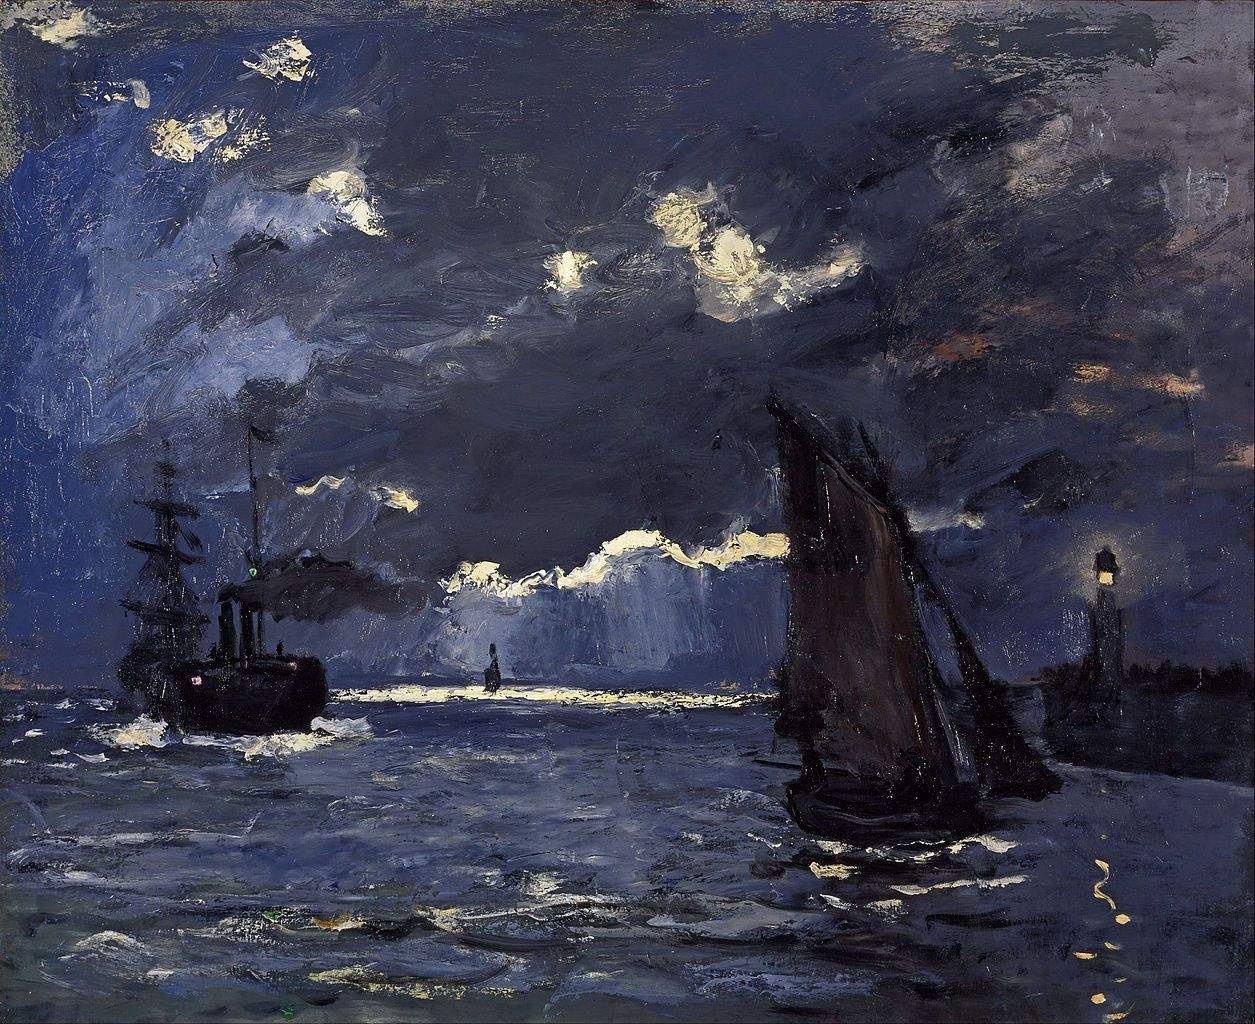 A Seascape, Shipping by Moonlight